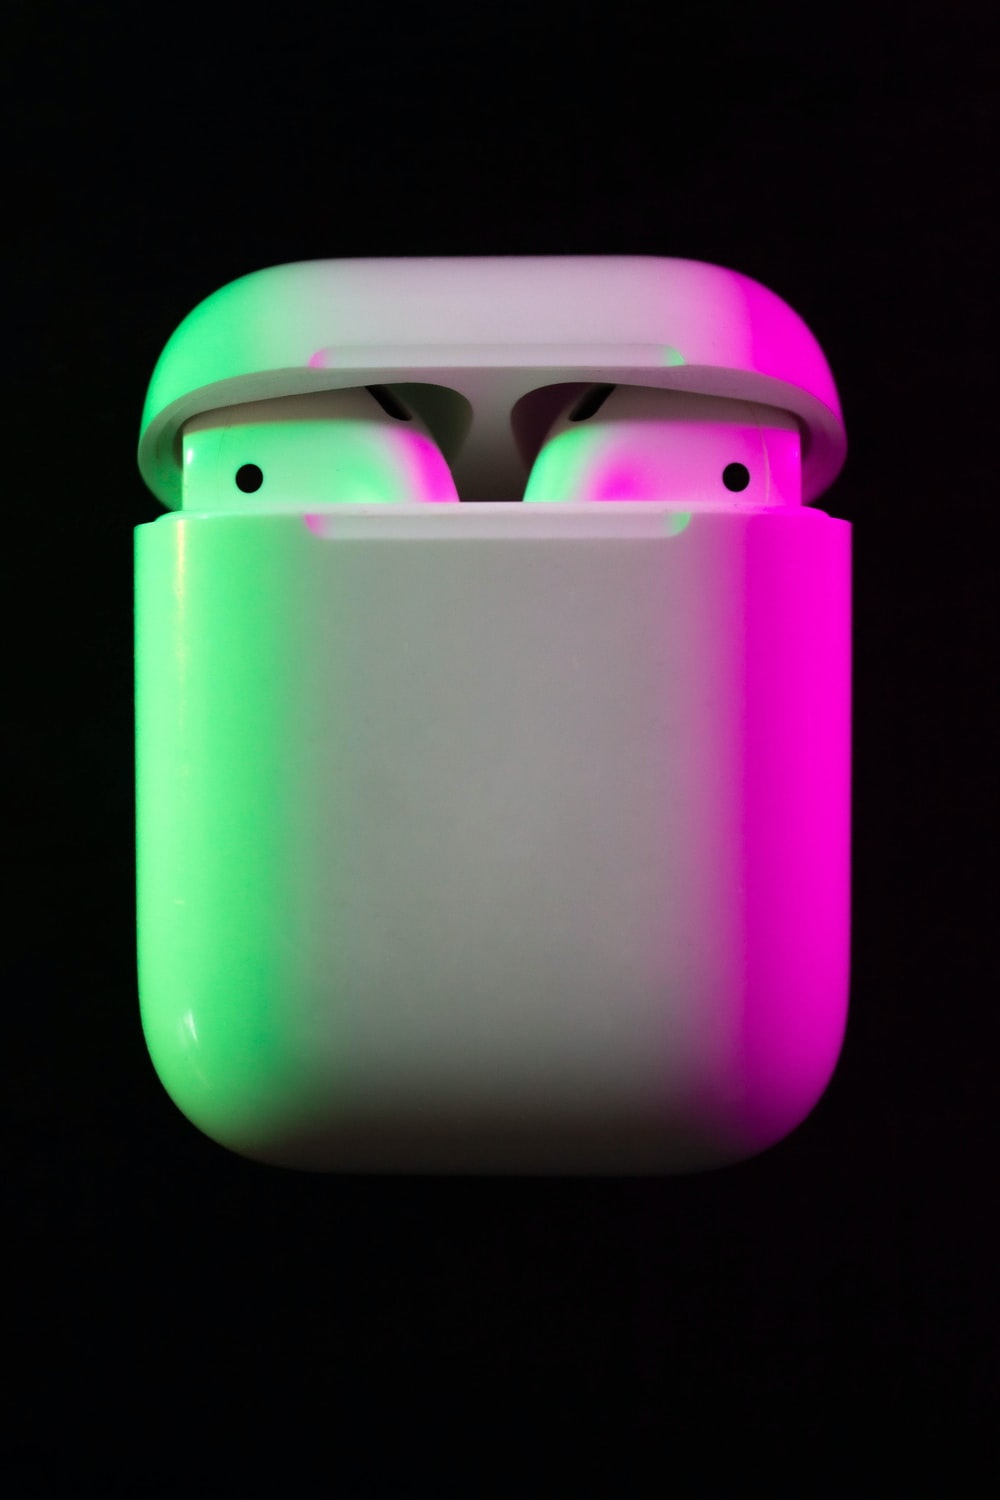 AirPods on a black background